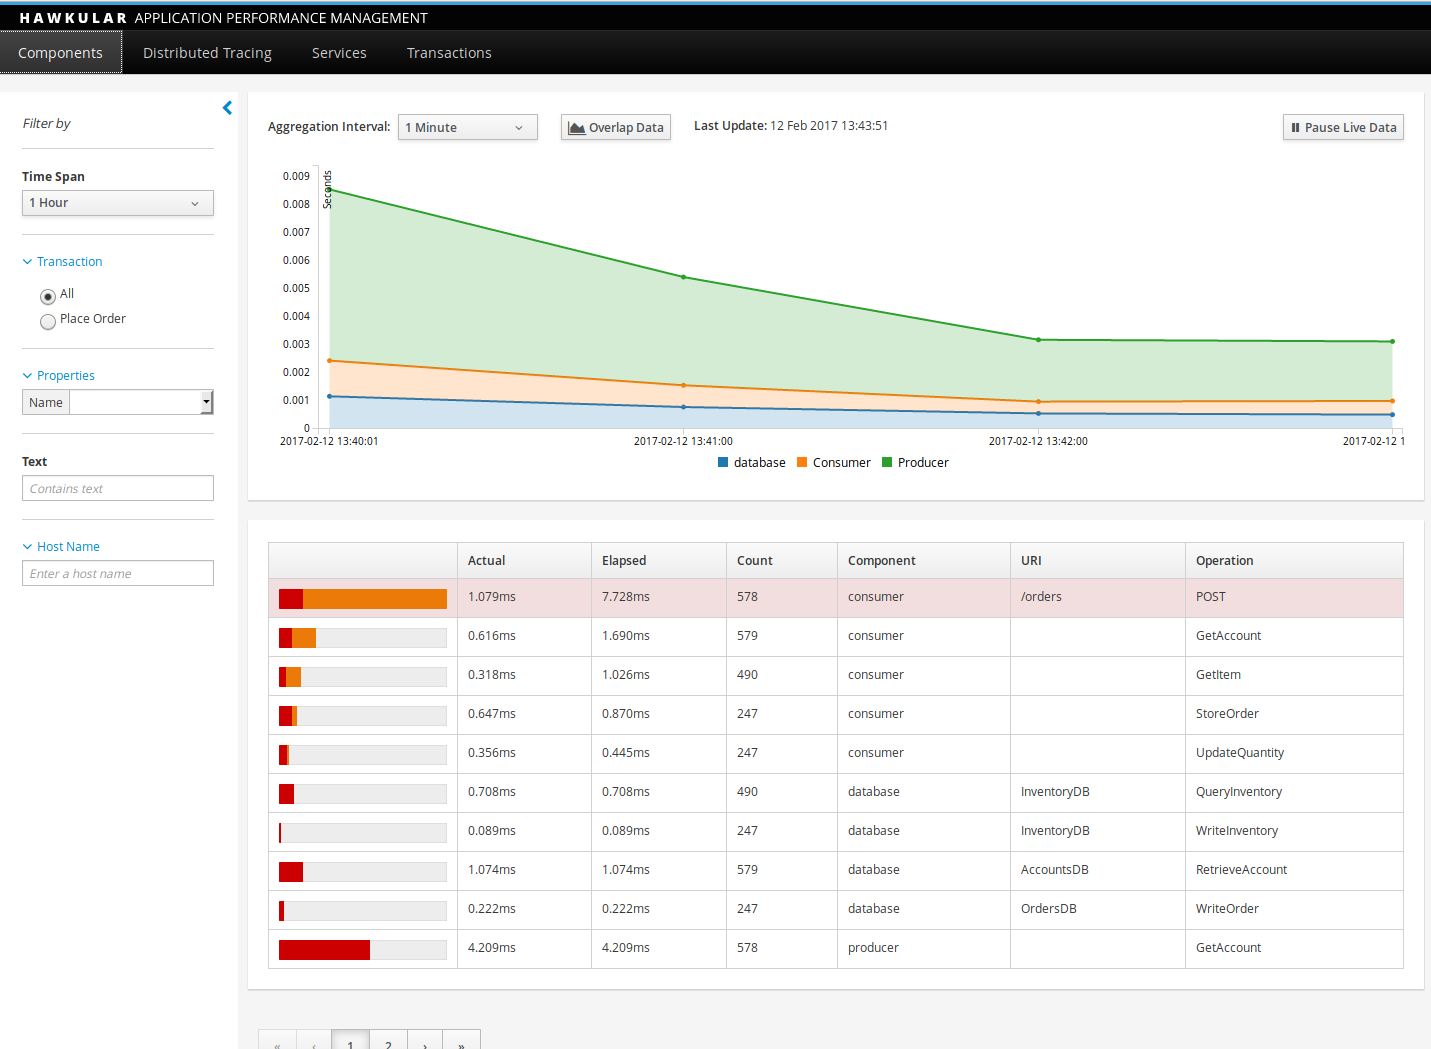 Hawkular APM Dashboard with Data